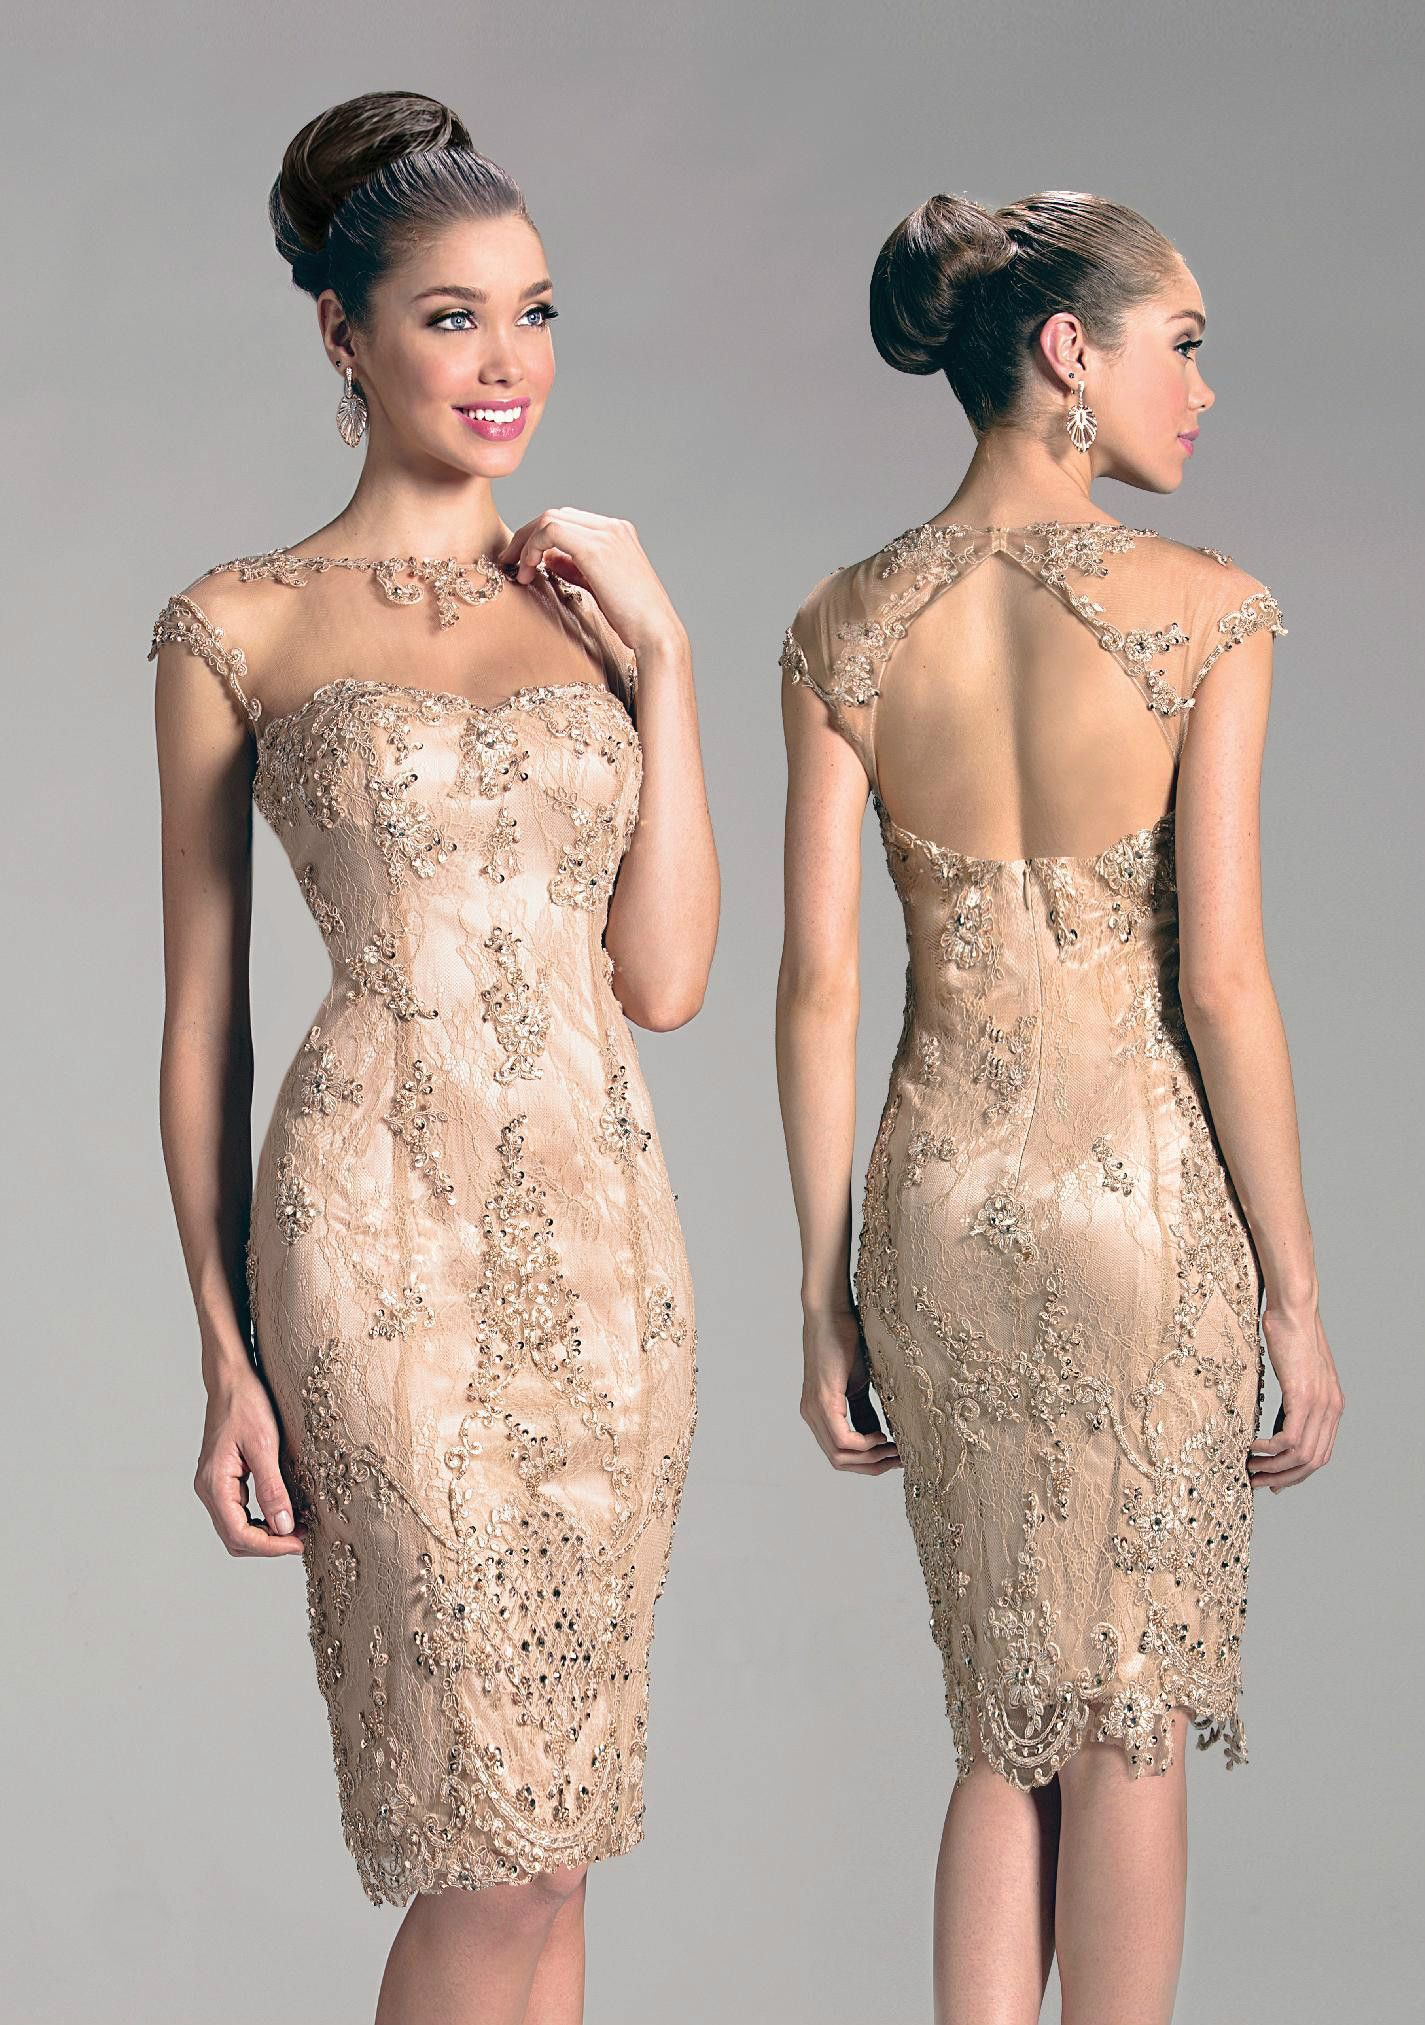 Gorgeous Knee Length Cocktail Dress In Champagne Sheer Collar With Delicate Embroidery Cocktail Dress Patterns Long Cocktail Dress Knee Length Cocktail Dress [ 2025 x 1425 Pixel ]